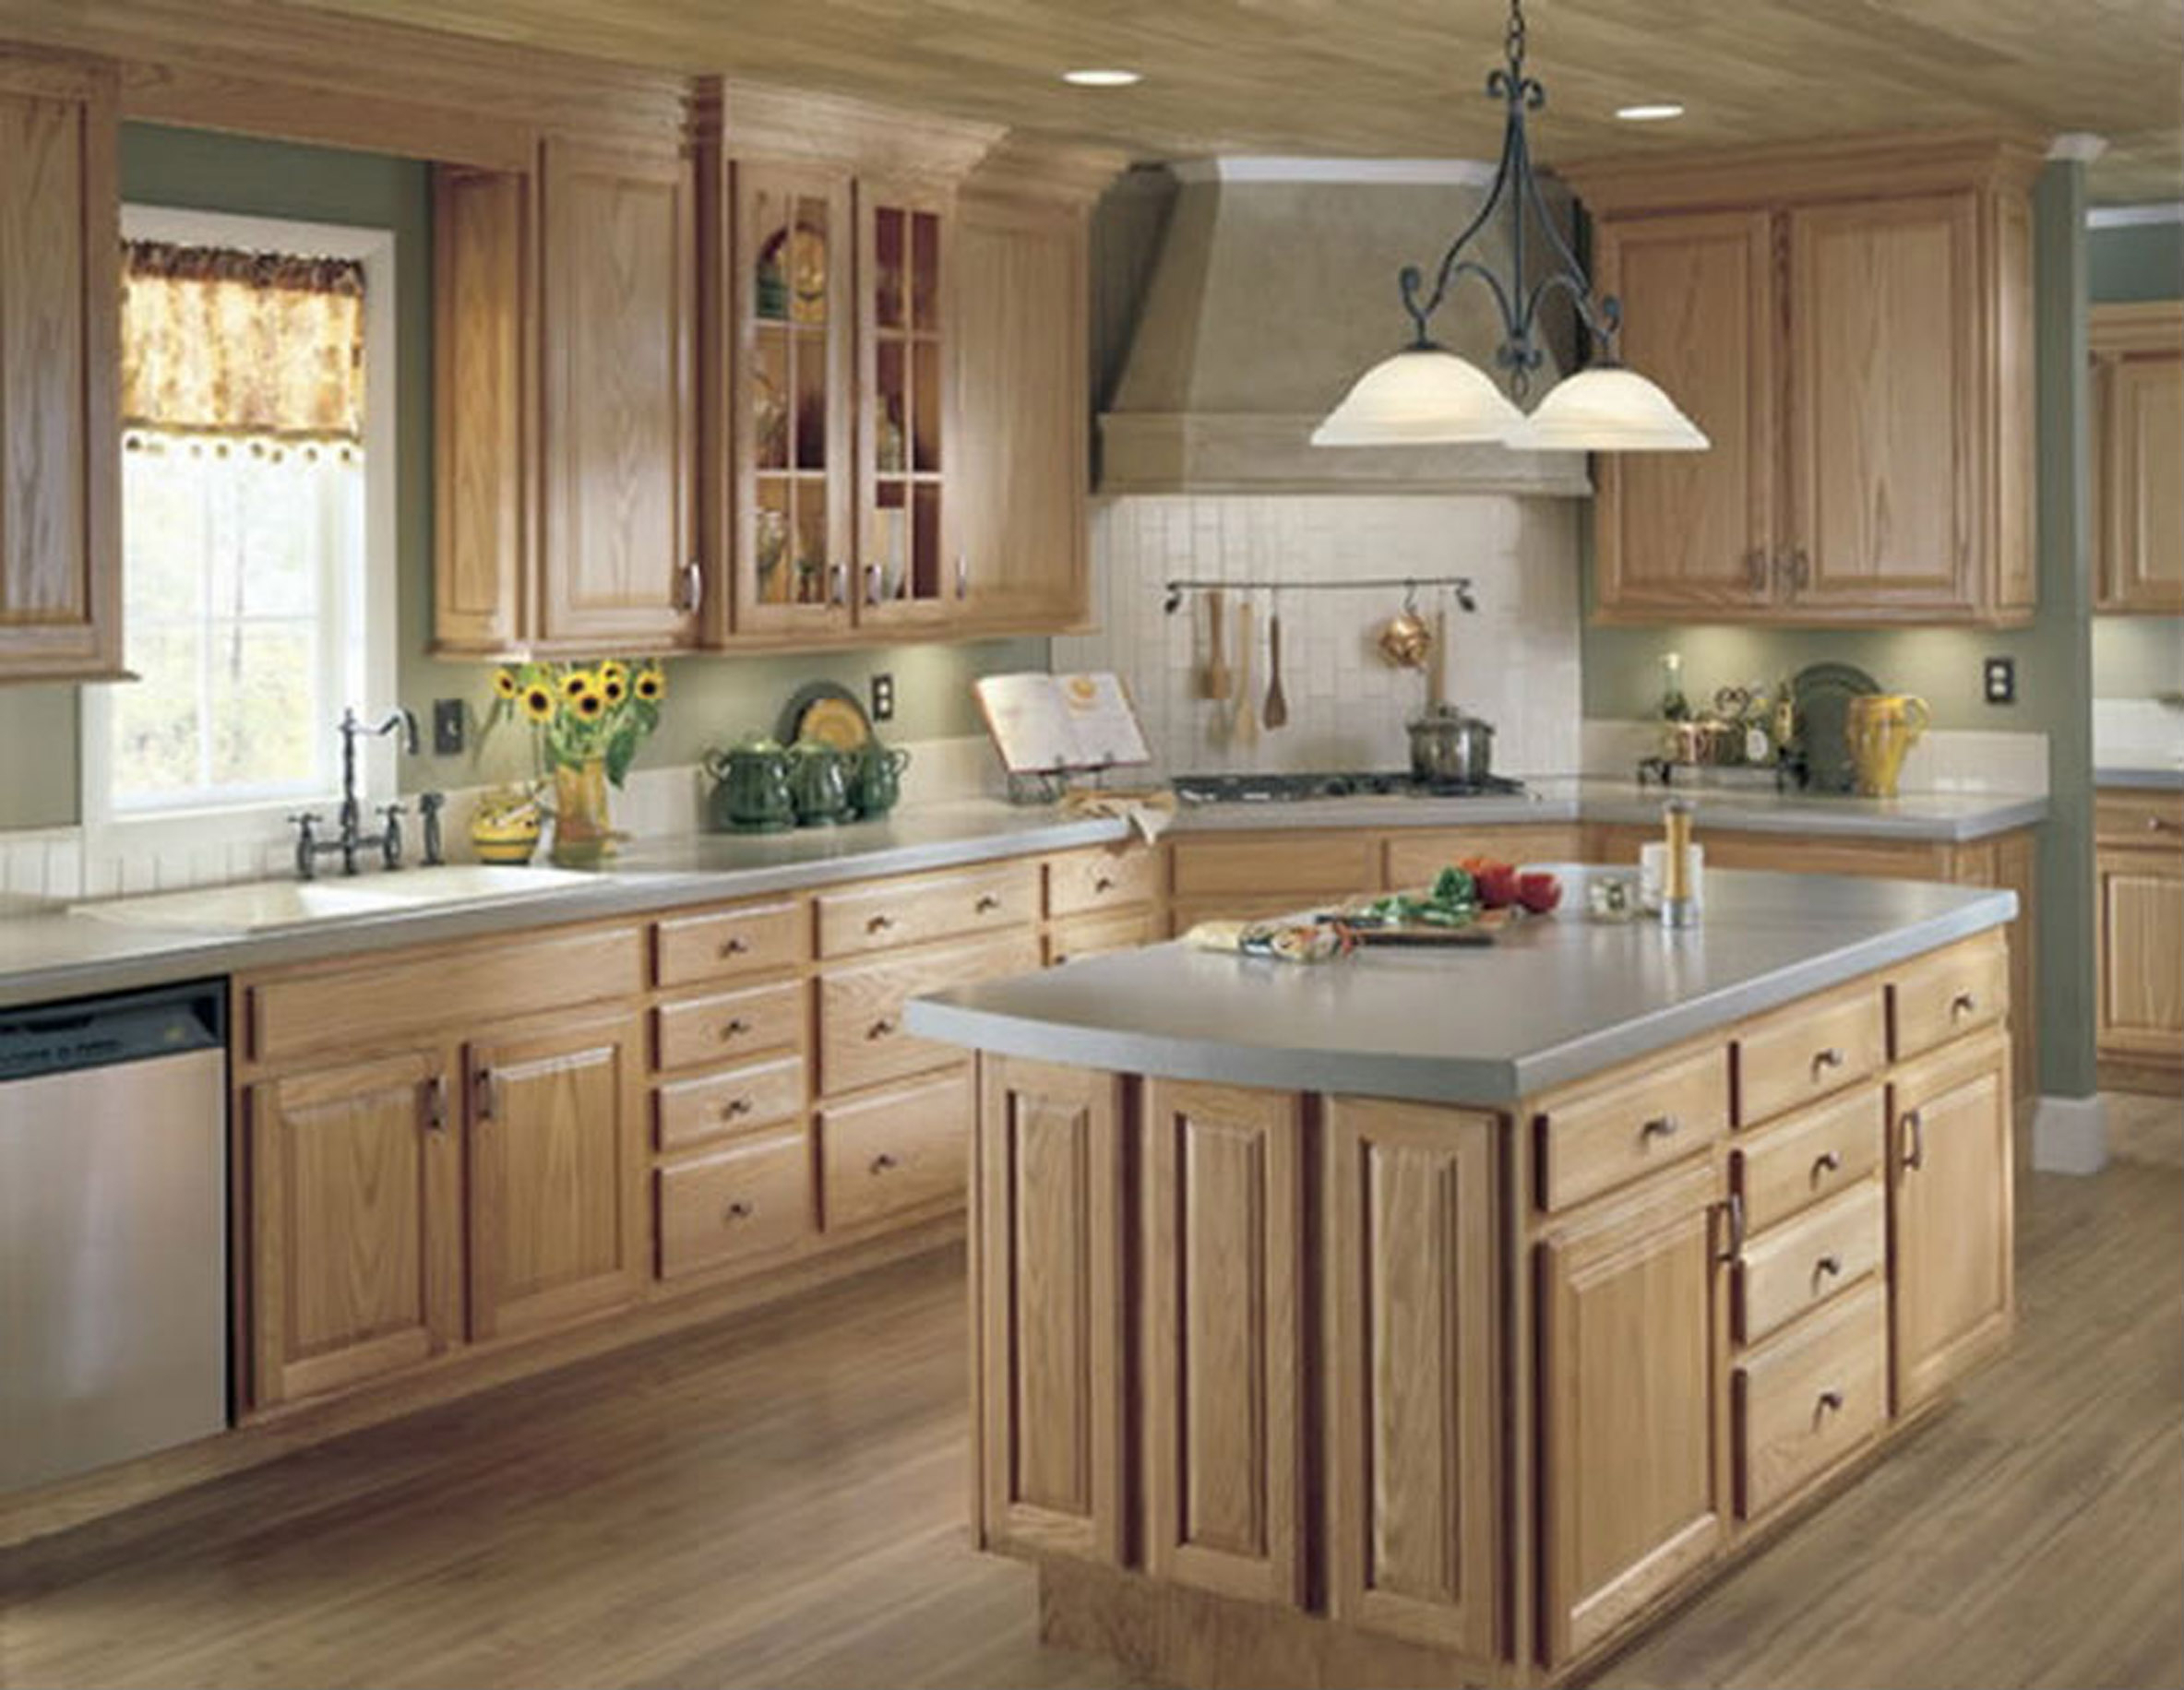 Modern Kitchen Idea With Wooden Cabinets And Island And Wooden Floor Design A Kitchen Free Online (Image 27 of 31)